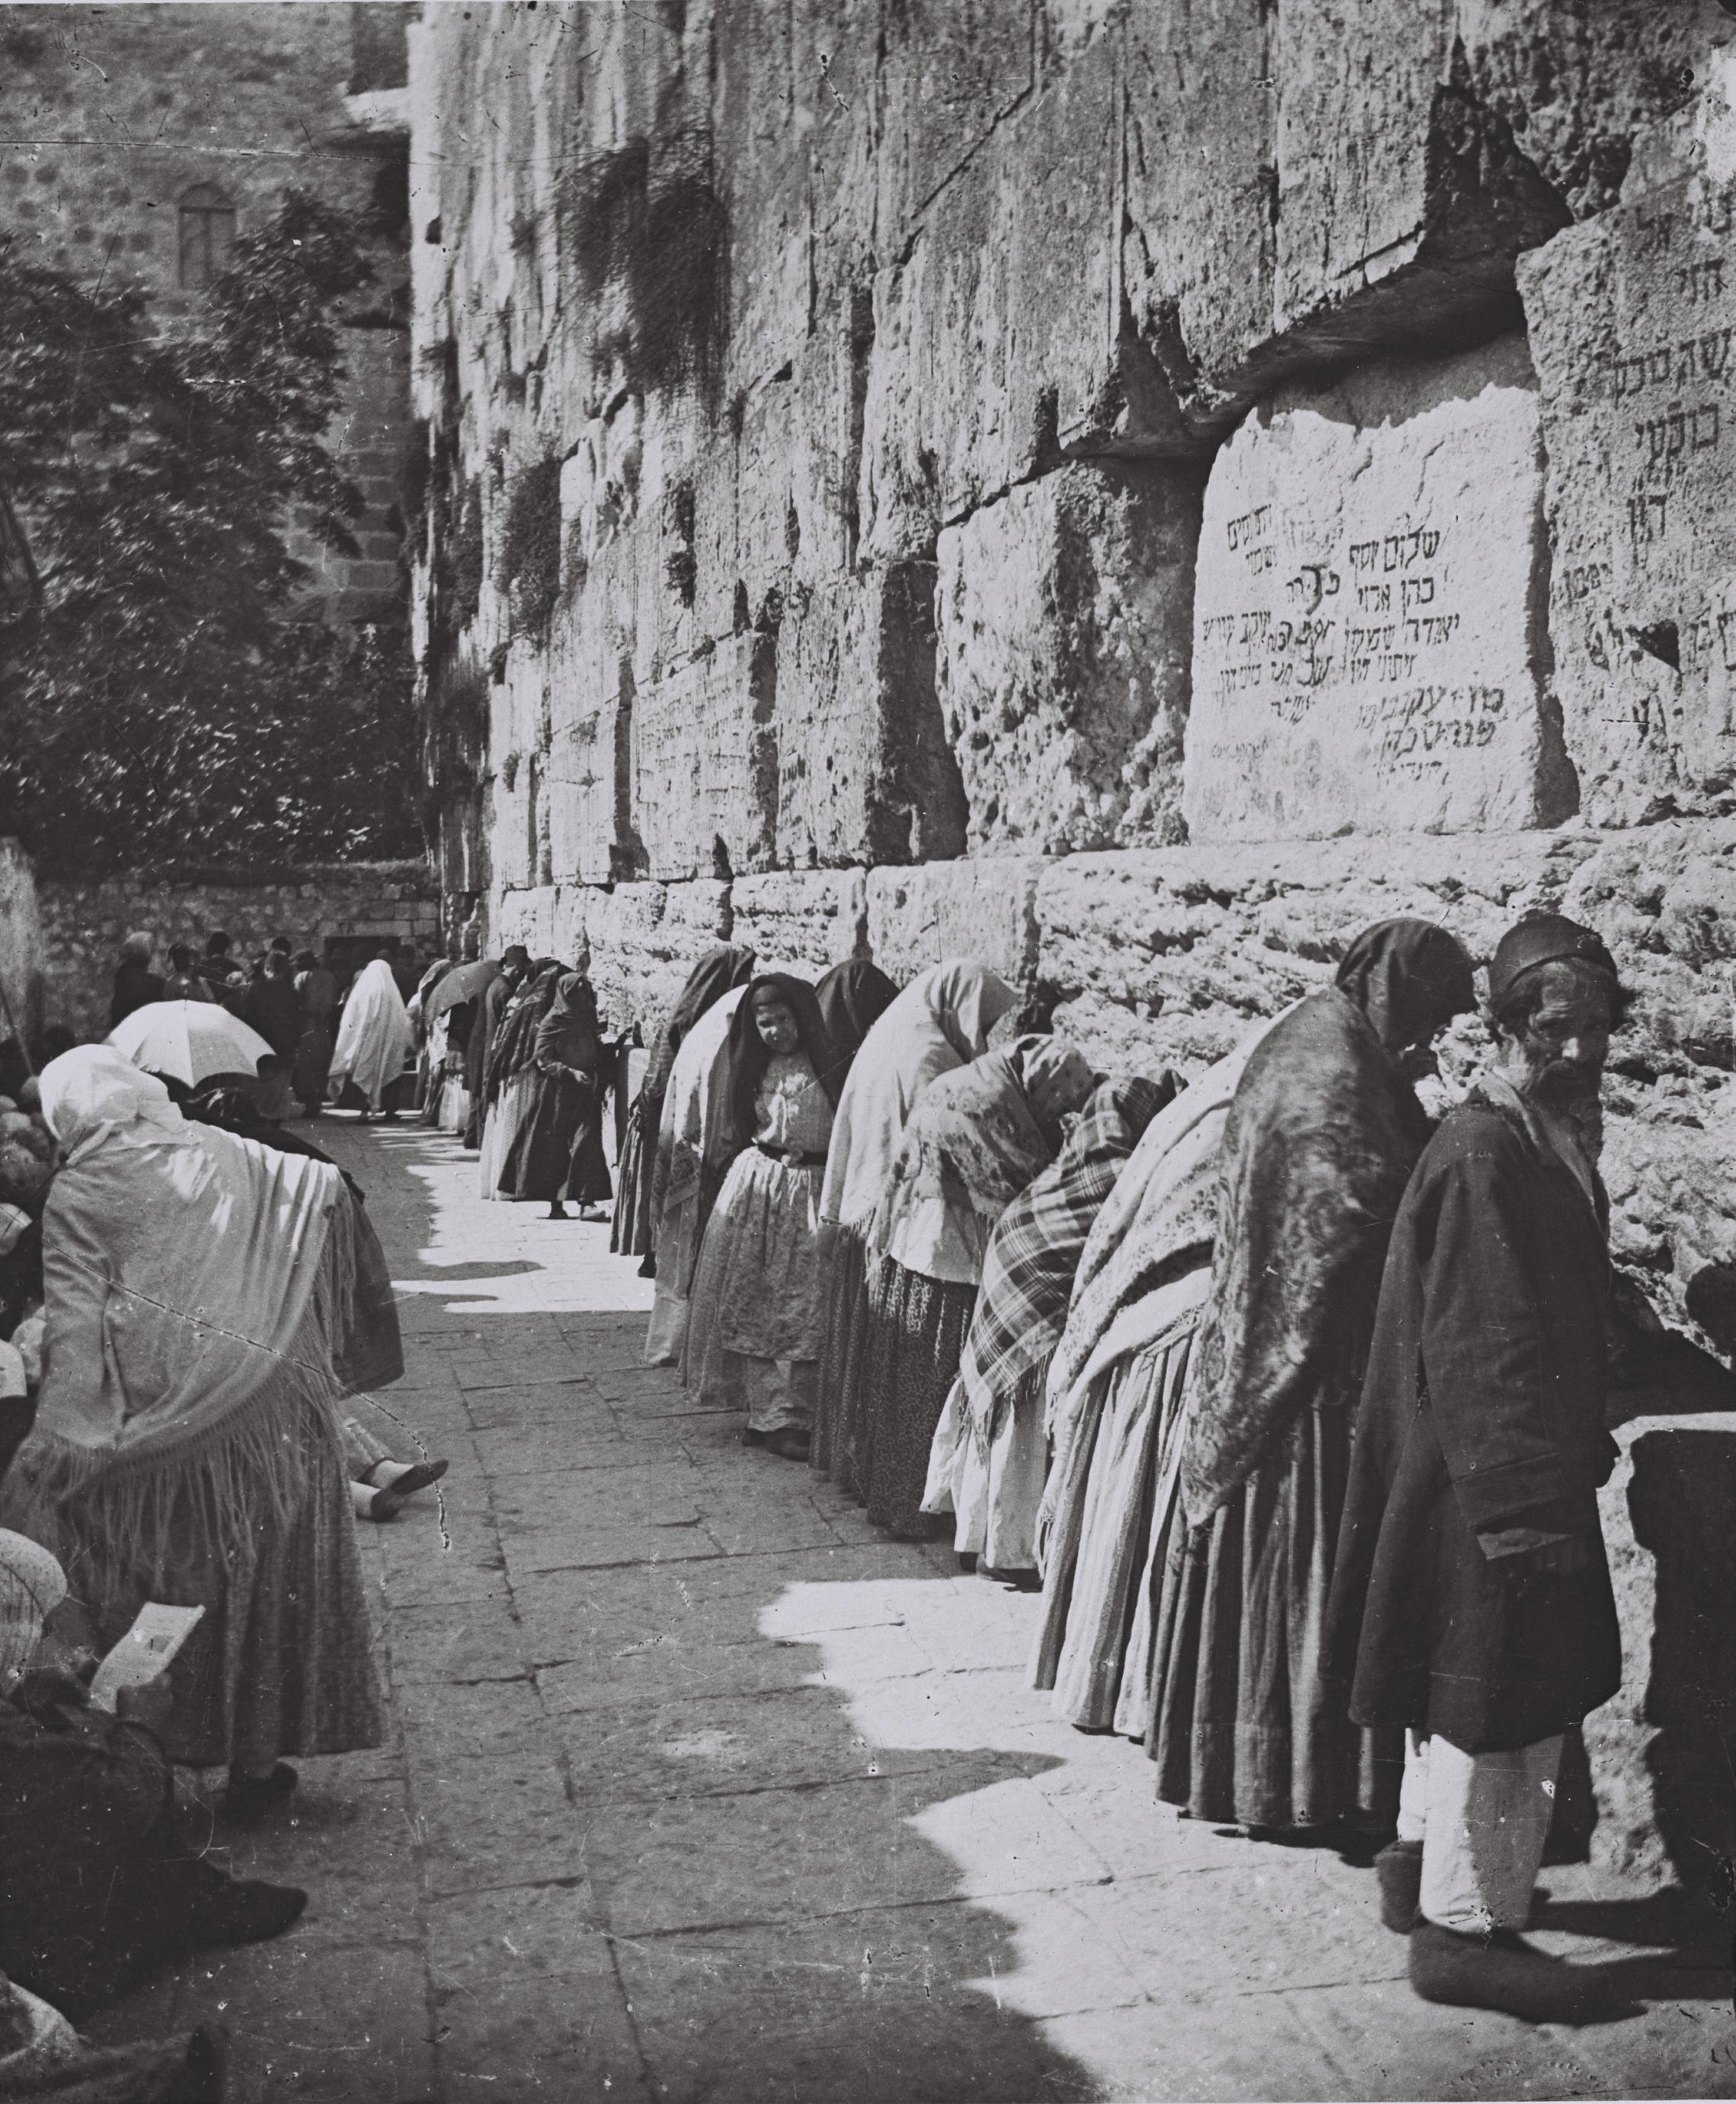 File:THE WAILING WALL (WESTERN WALL) IN THE OLD CITY OF